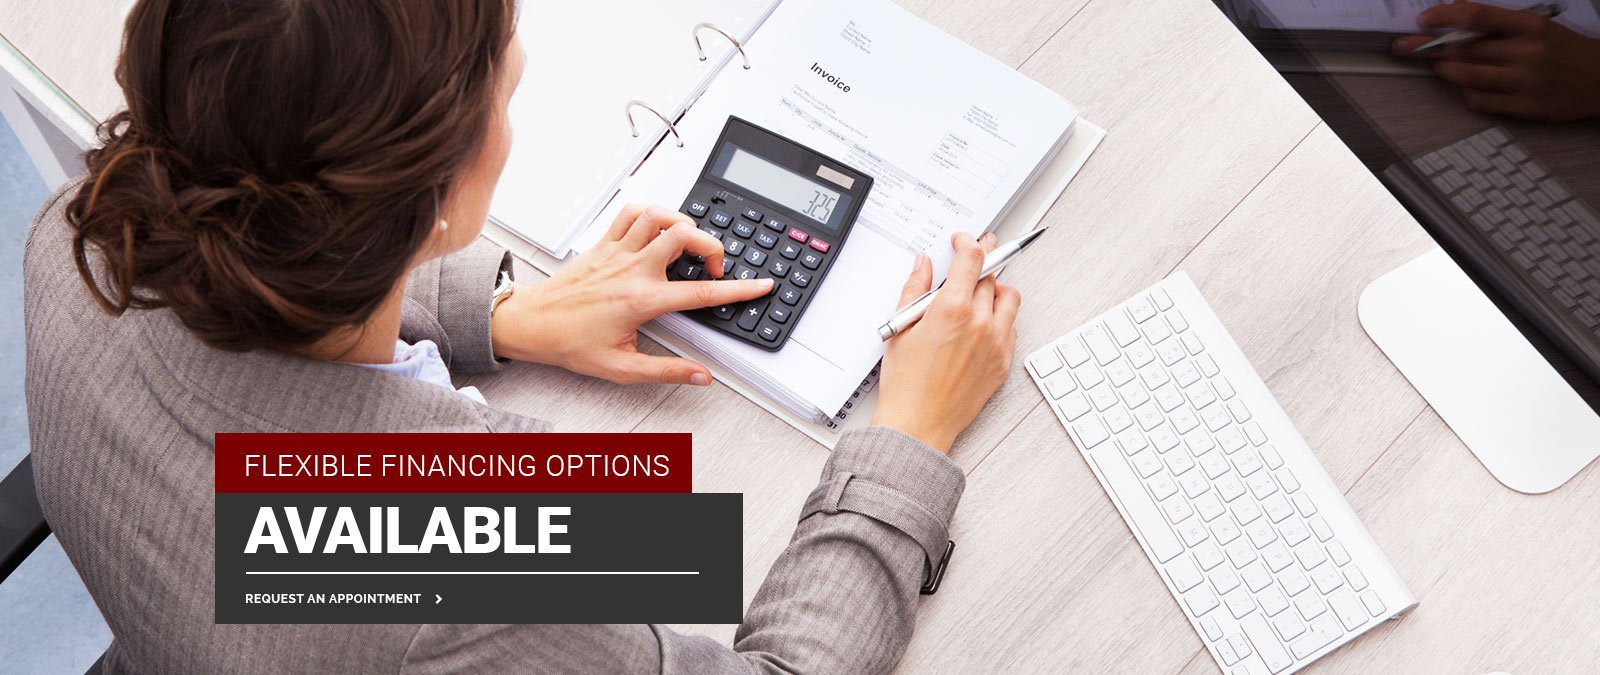 Flexible Financing Options Available